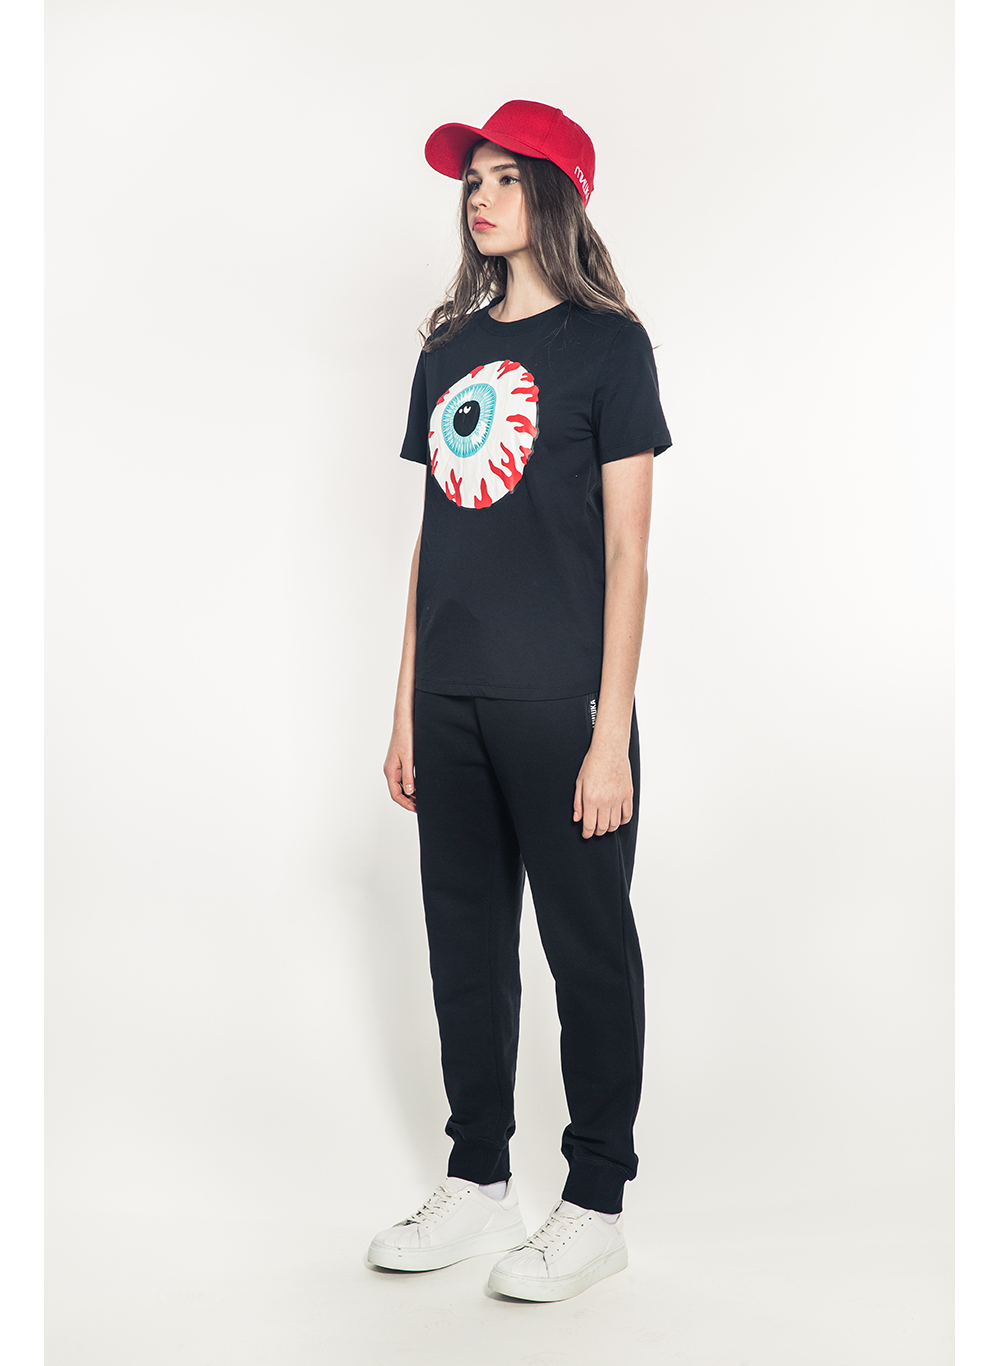 Classic Keep Watch Women's Tee